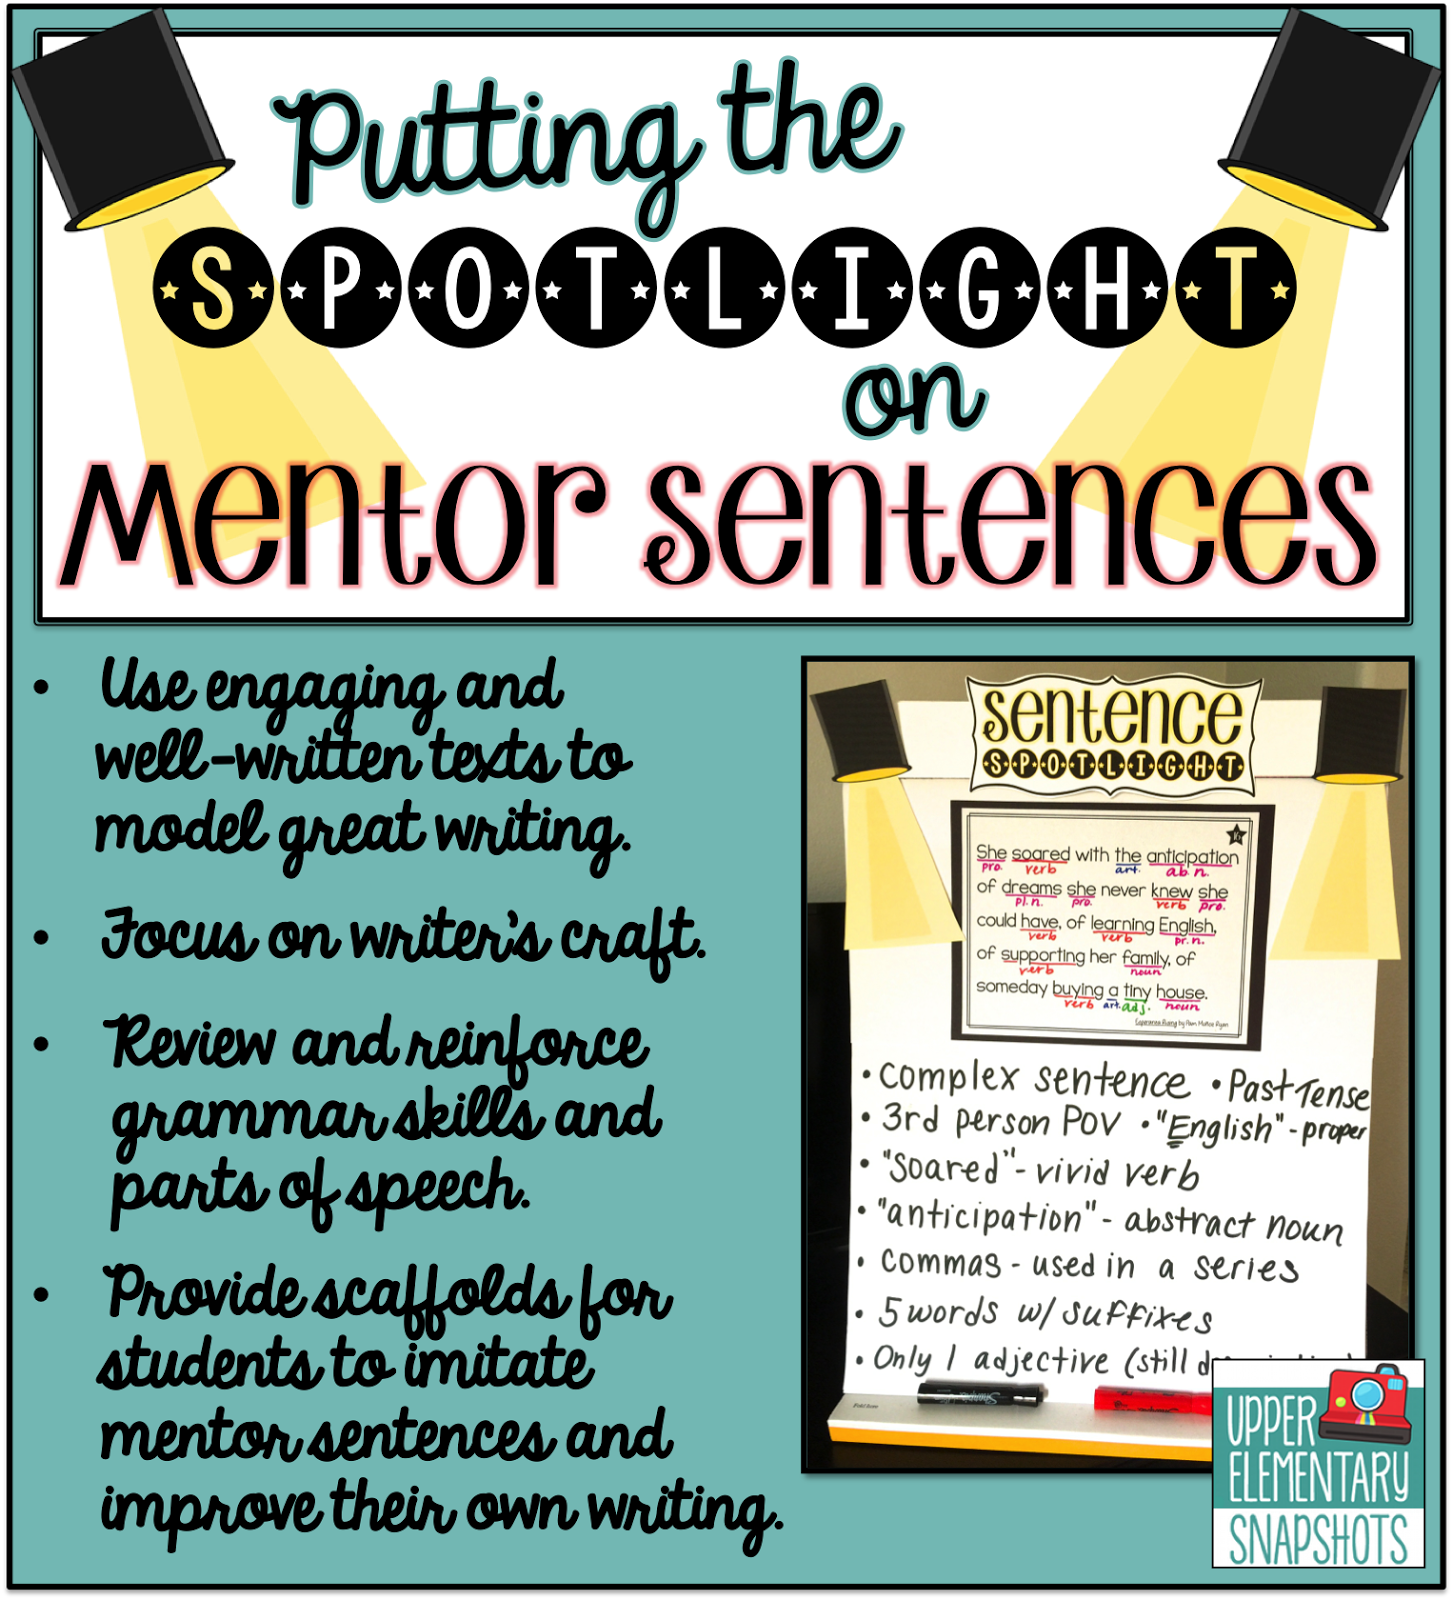 medium resolution of Putting the Spotlight on Mentor Sentences   Upper Elementary Snapshots